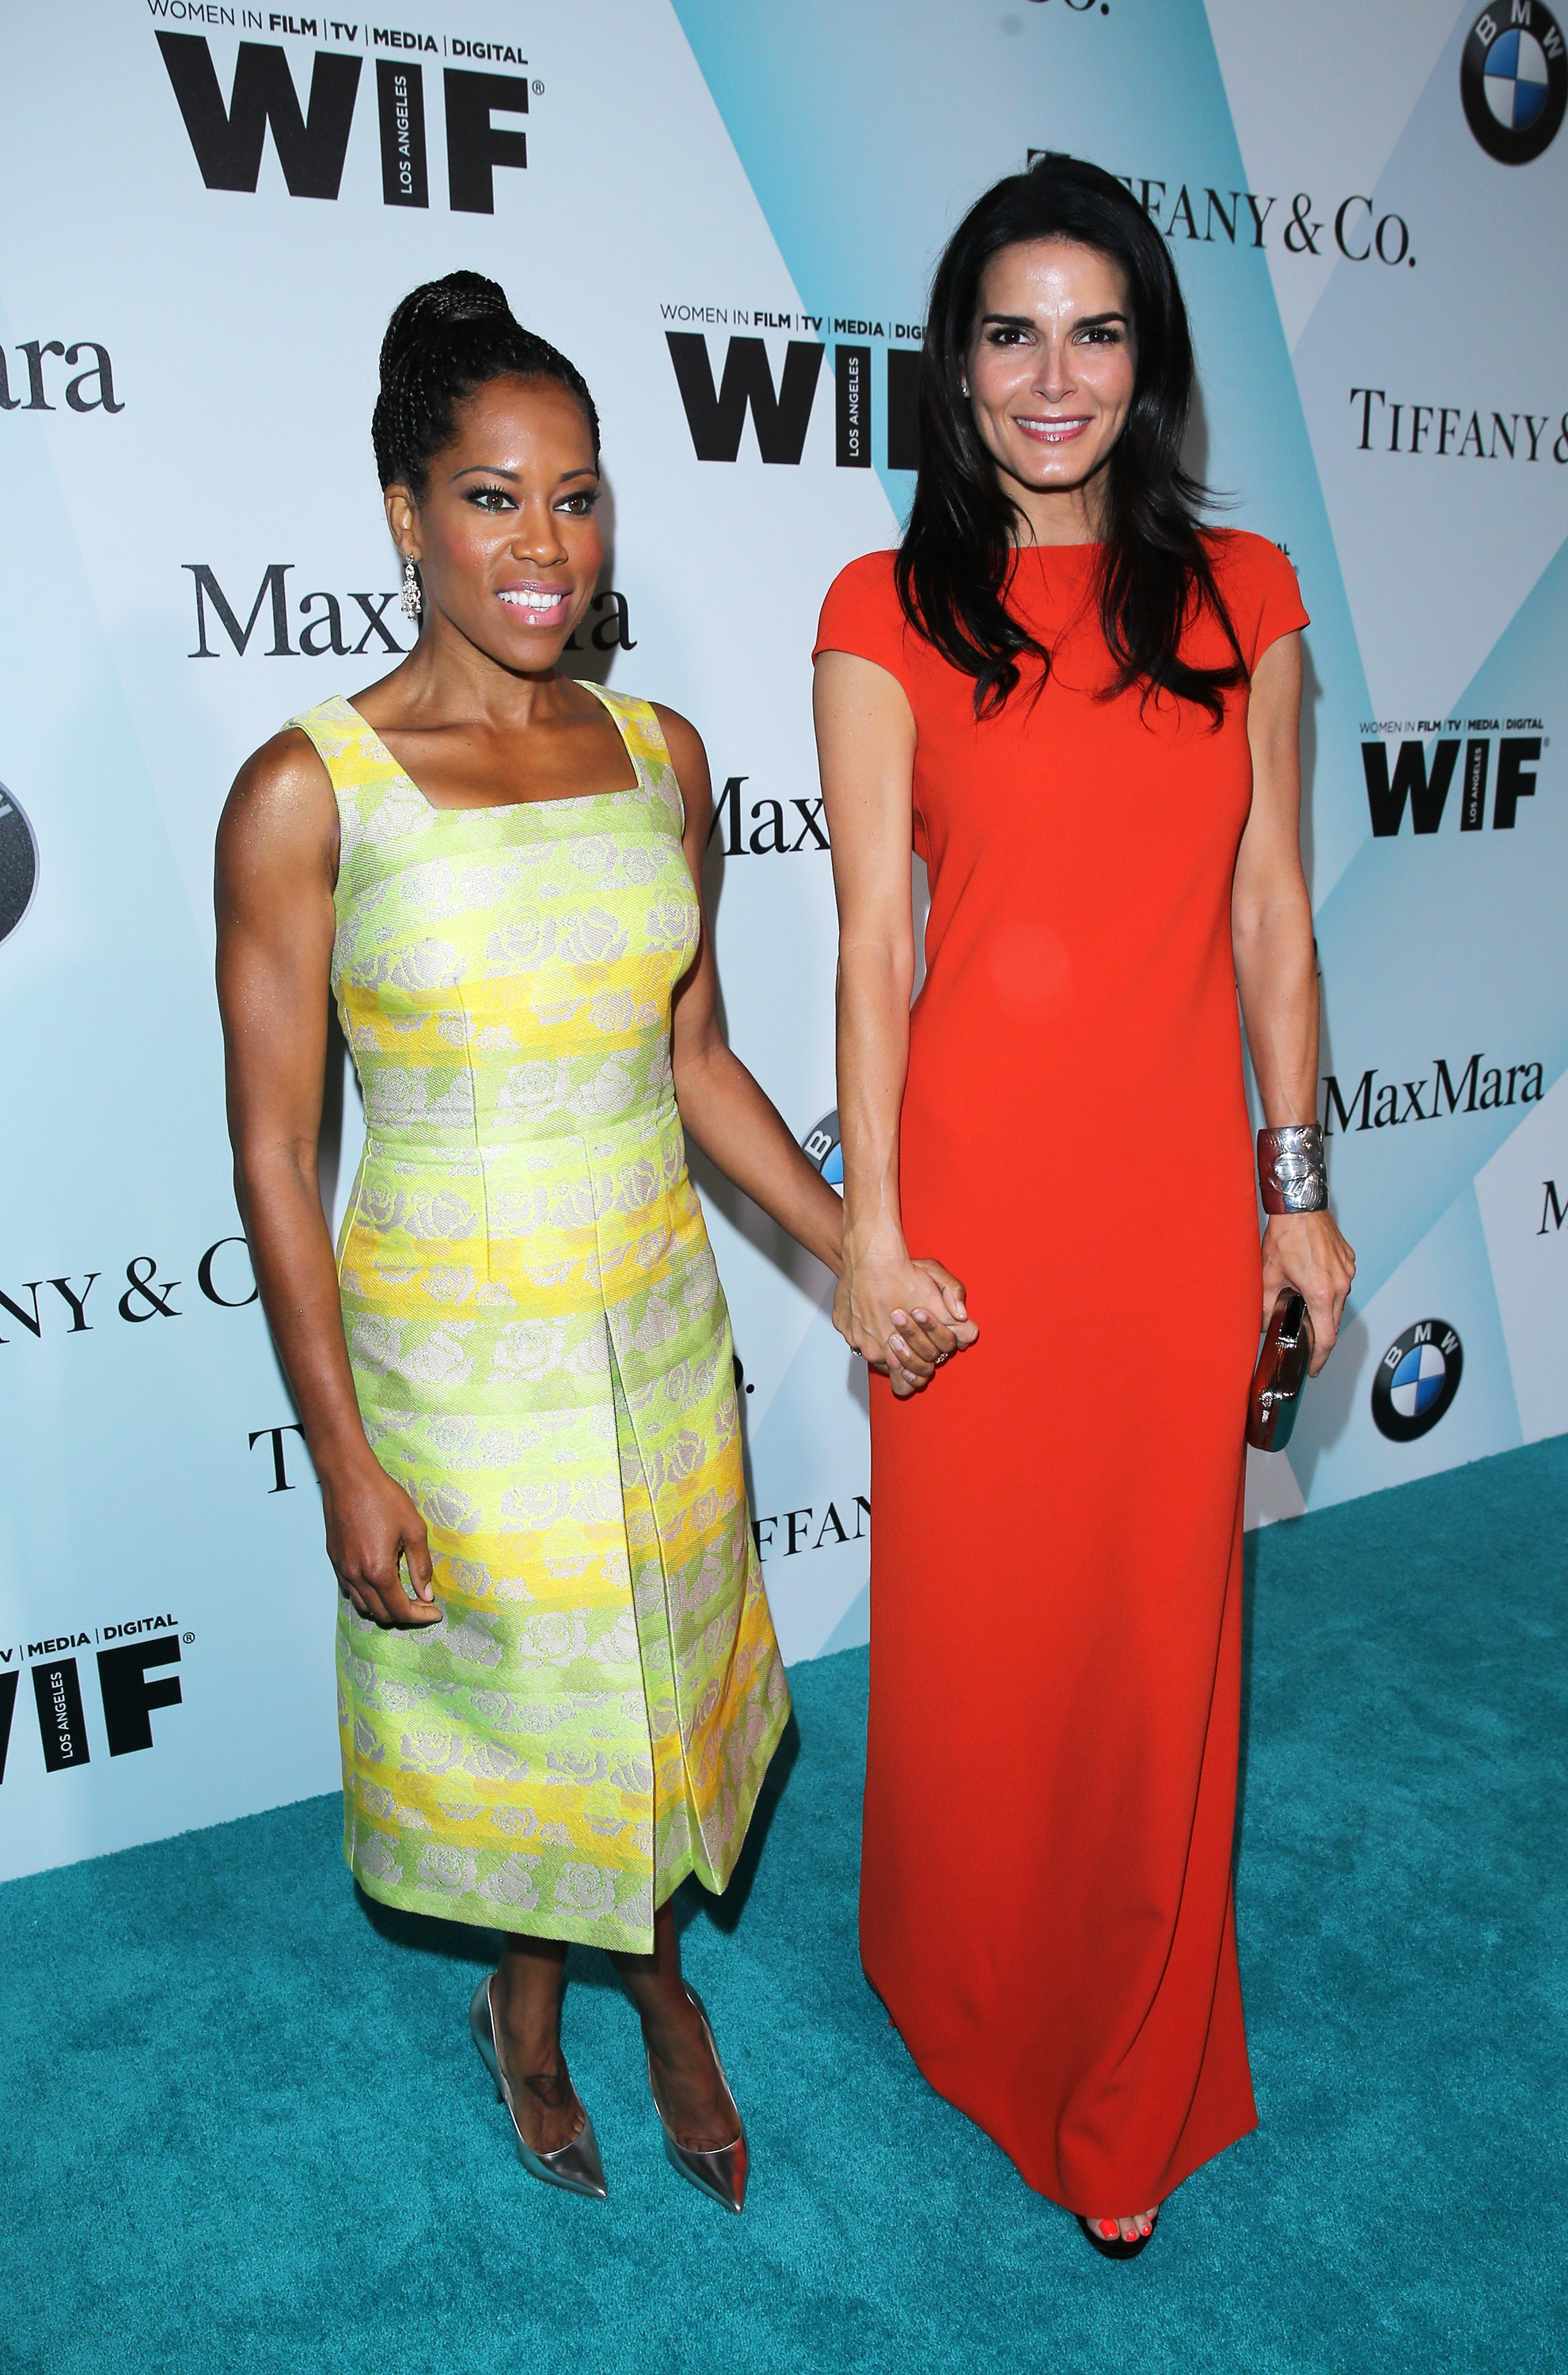 CENTURY CITY, CA - JUNE 16:  Actors Regina King (L) and Angie Harmon attend Women In Film 2015 Crystal + Lucy Awards Presented by Max Mara, BMW of North America, and Tiffany & Co. at the Hyatt Regency Century Plaza on June 16, 2015 in Century City, California.  (Photo by Mark Davis/Getty Images for Women in Film)